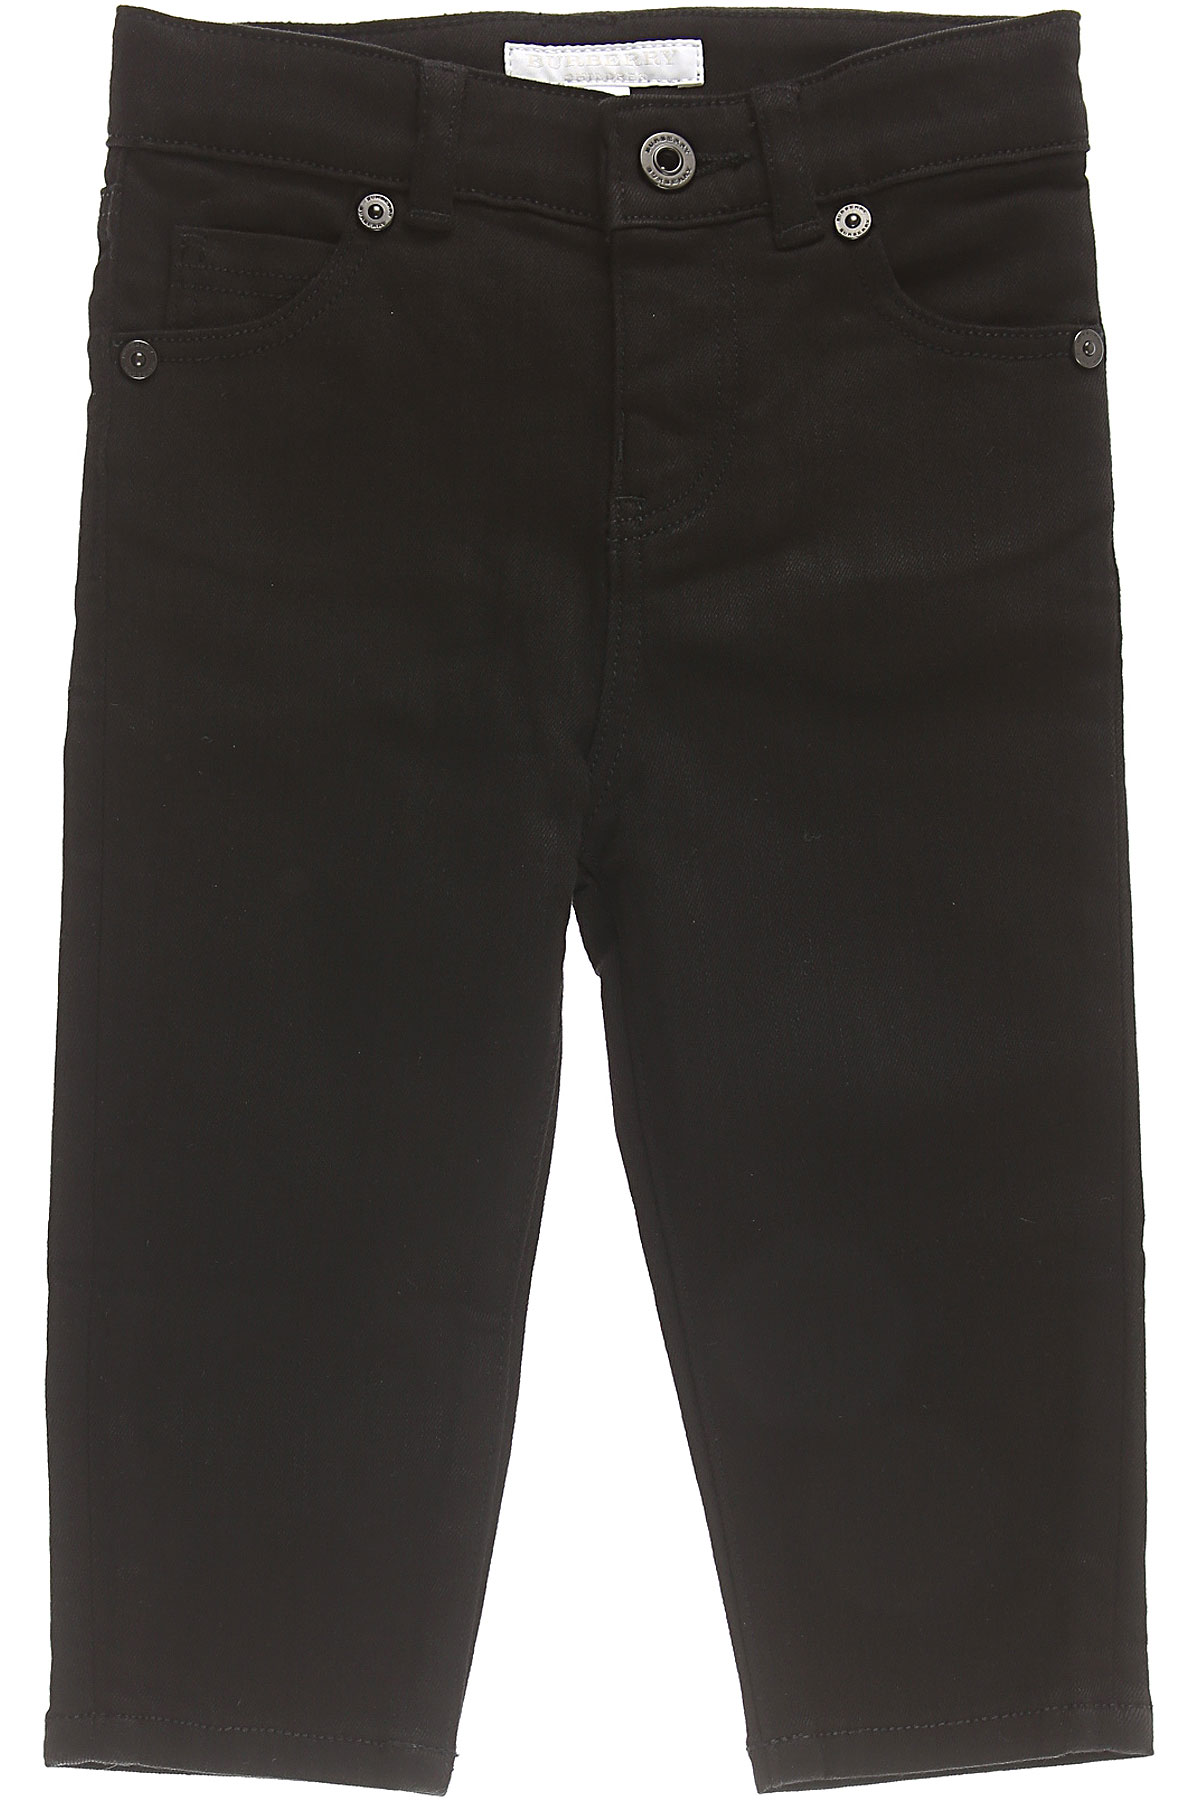 Image of Burberry Baby Jeans for Boys, Black, Cotton, 2017, 12M 18M 2Y 3Y